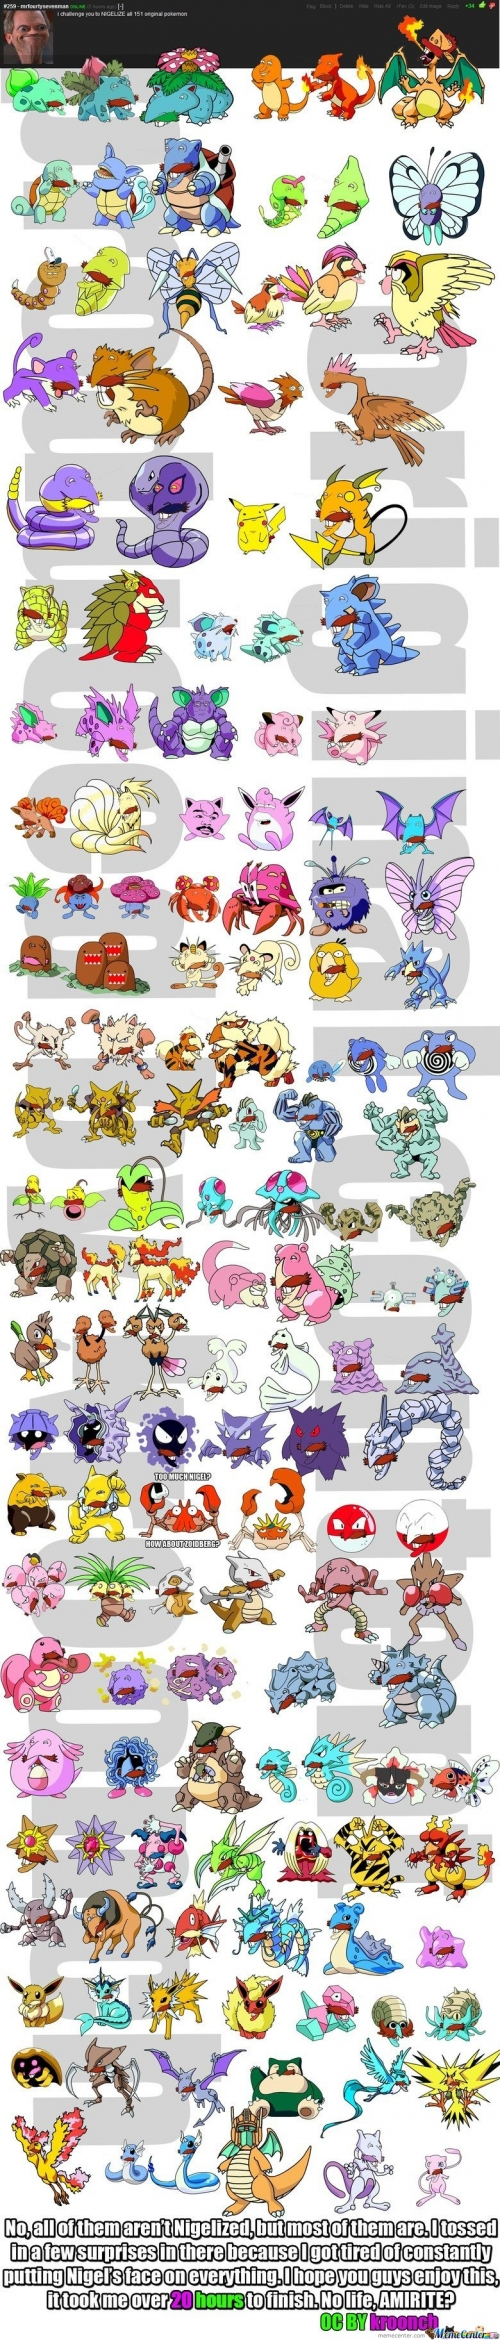 151 Pokemon - Nigel